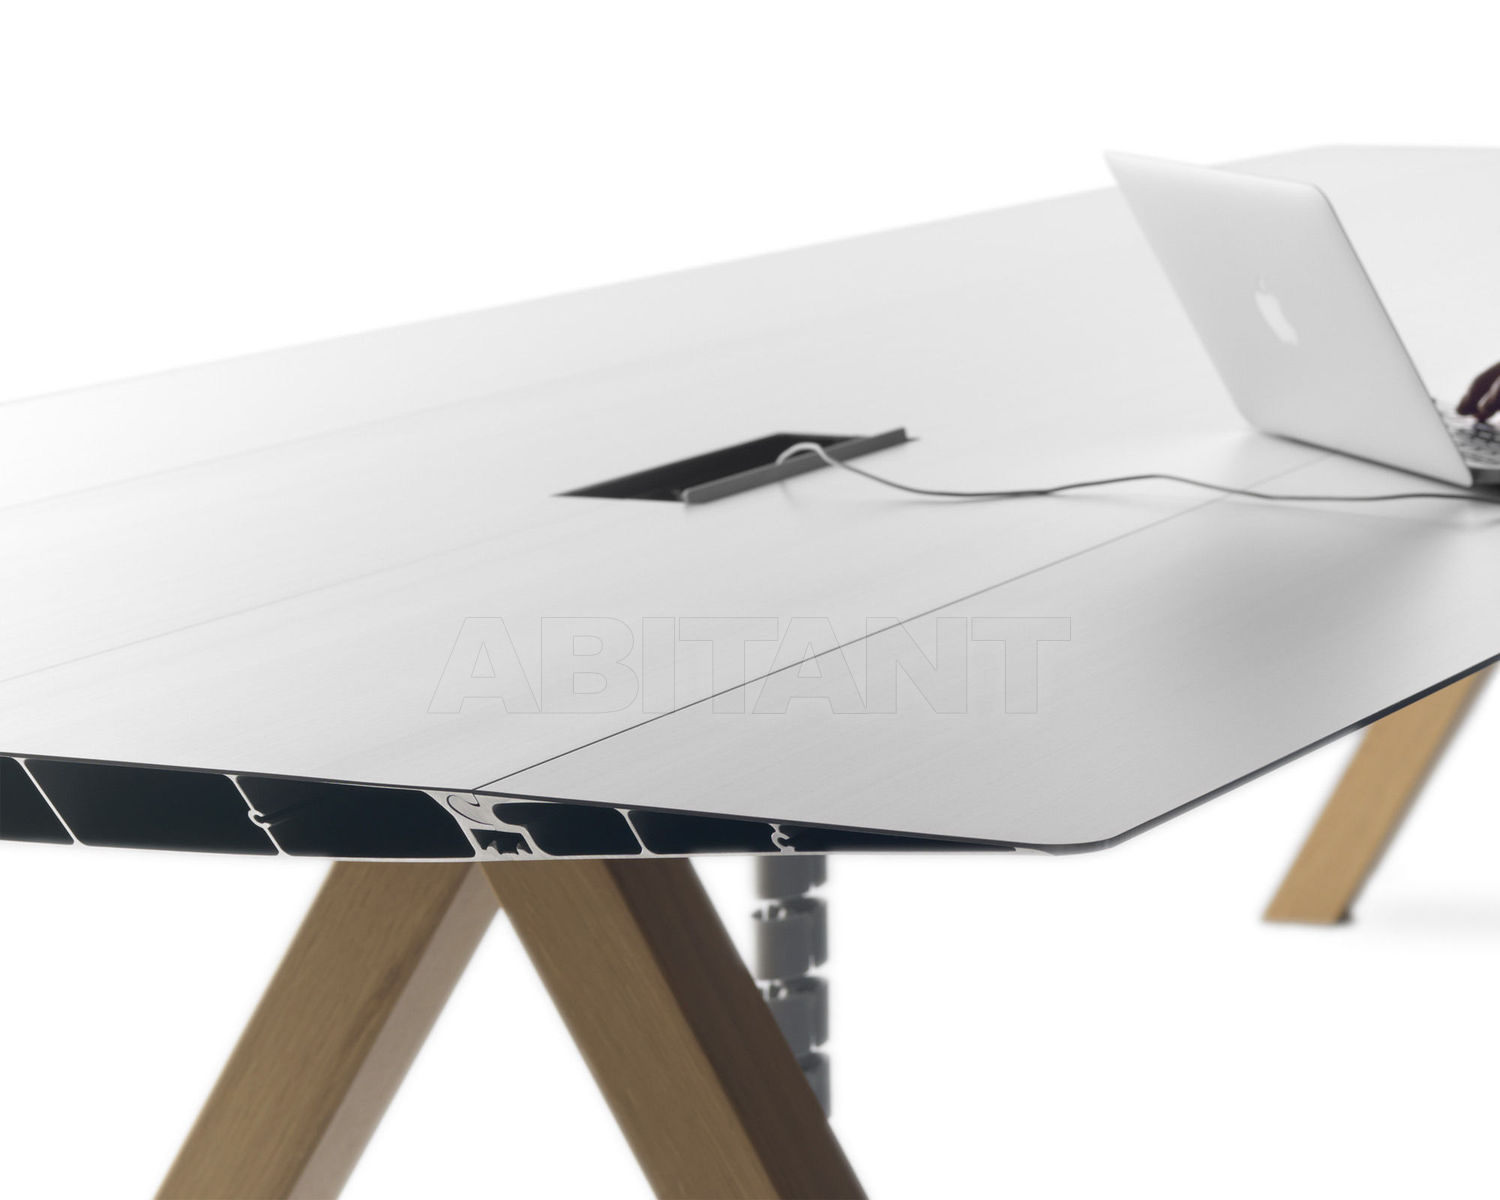 Conference Table TABLE B B.D (Barcelona Design) TABLES ELECTRIC CABLE  MANAGEMENT